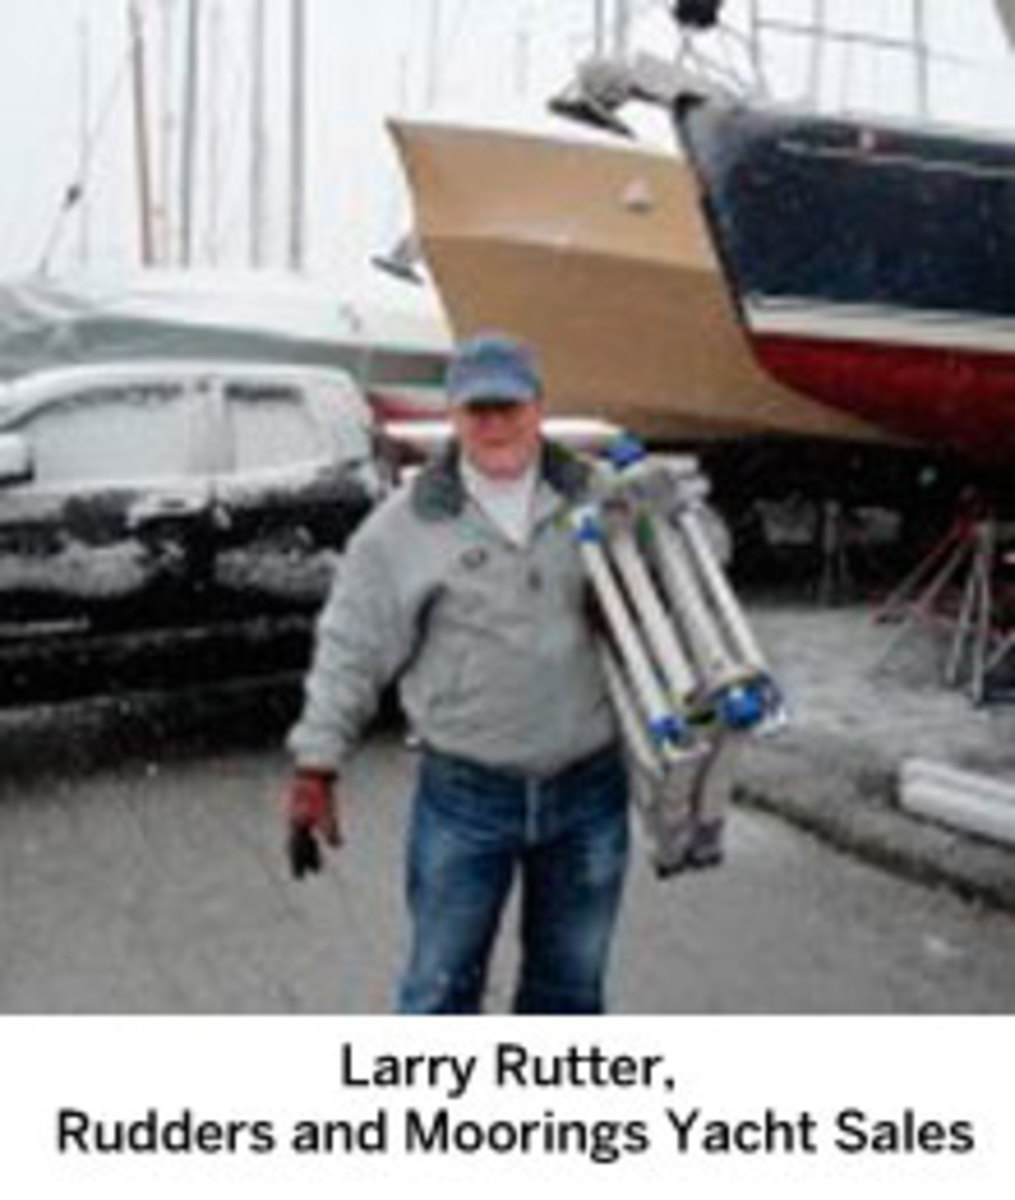 Larry Rutter, Rudders and Moorings Yacht Sales